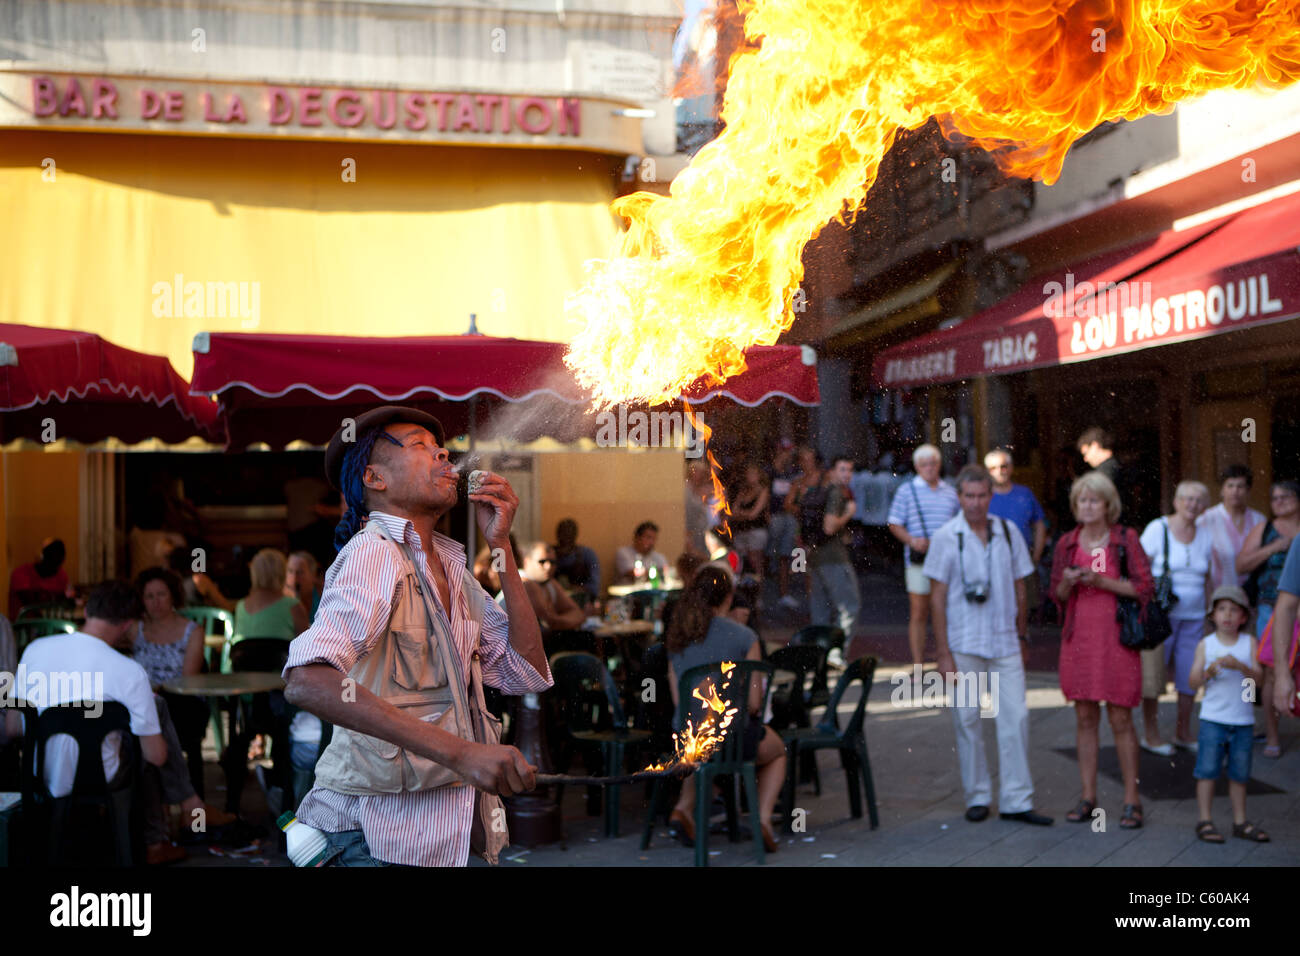 Fire breather, street entertainer, Nice, France - Stock Image